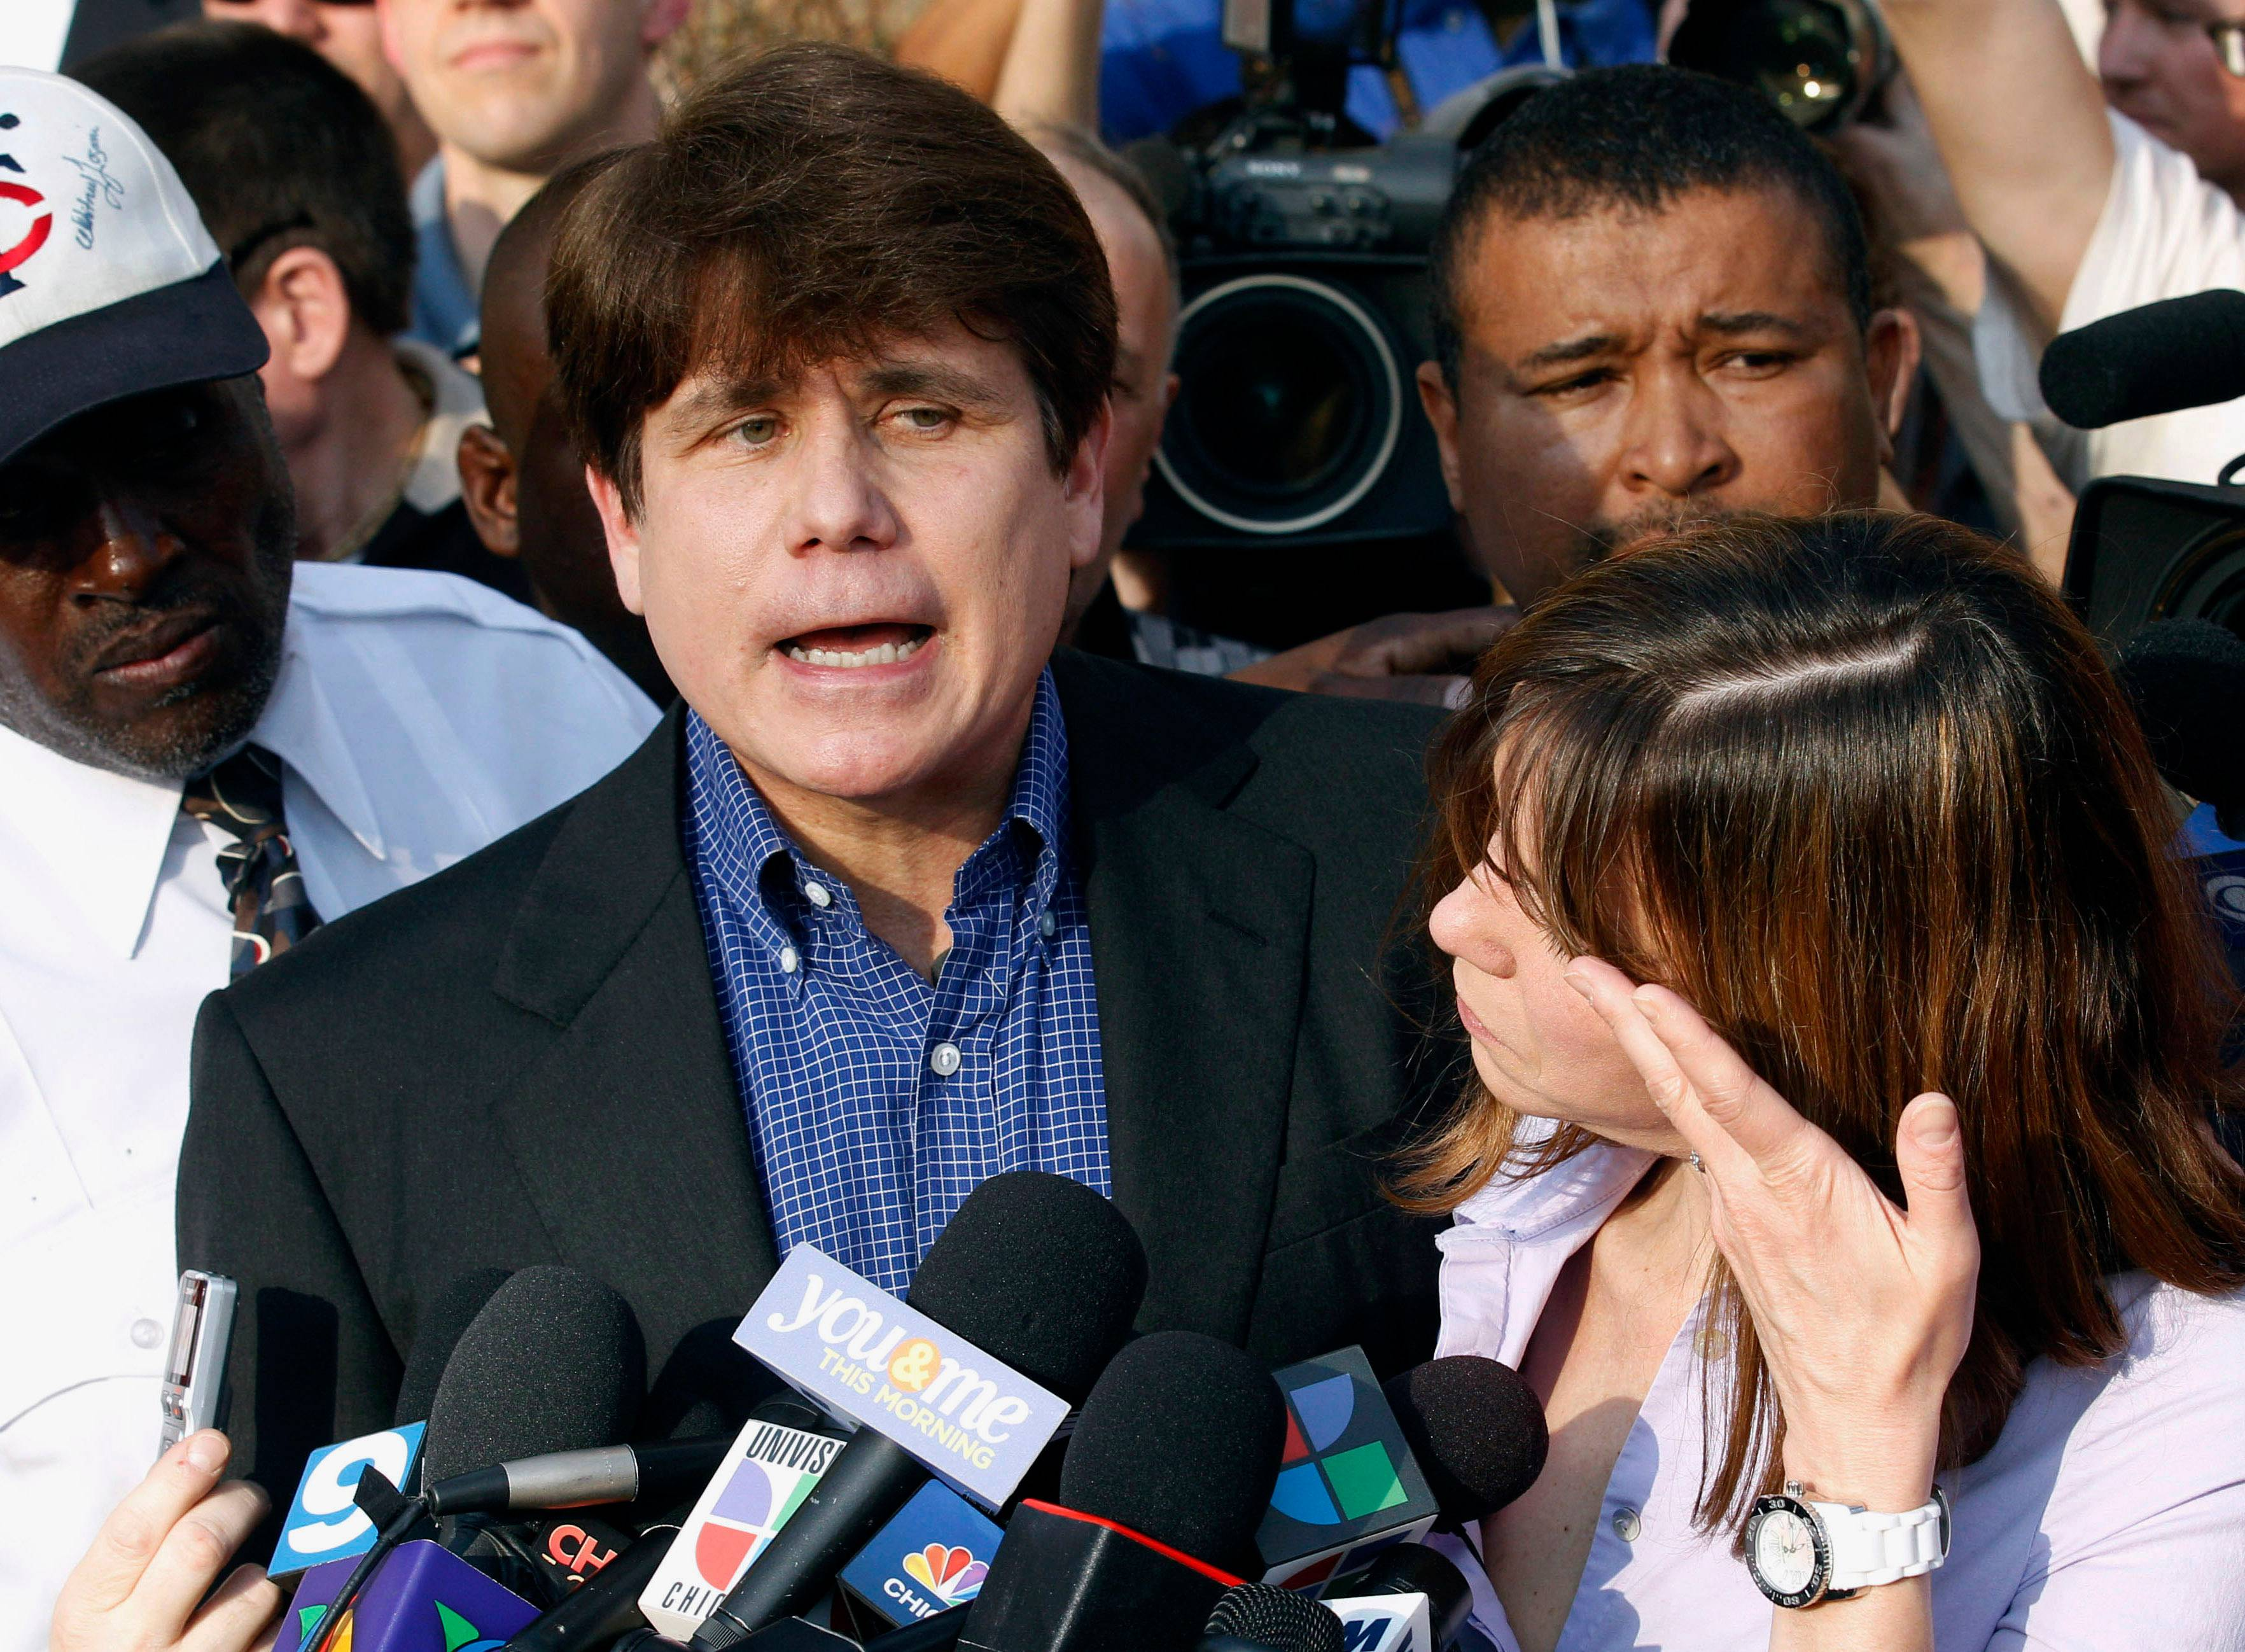 Former Illinois Gov. Rod Blagojevich, shown here in 2012 with his wife, Patti, had a second appeal rejected by the Supreme Court.